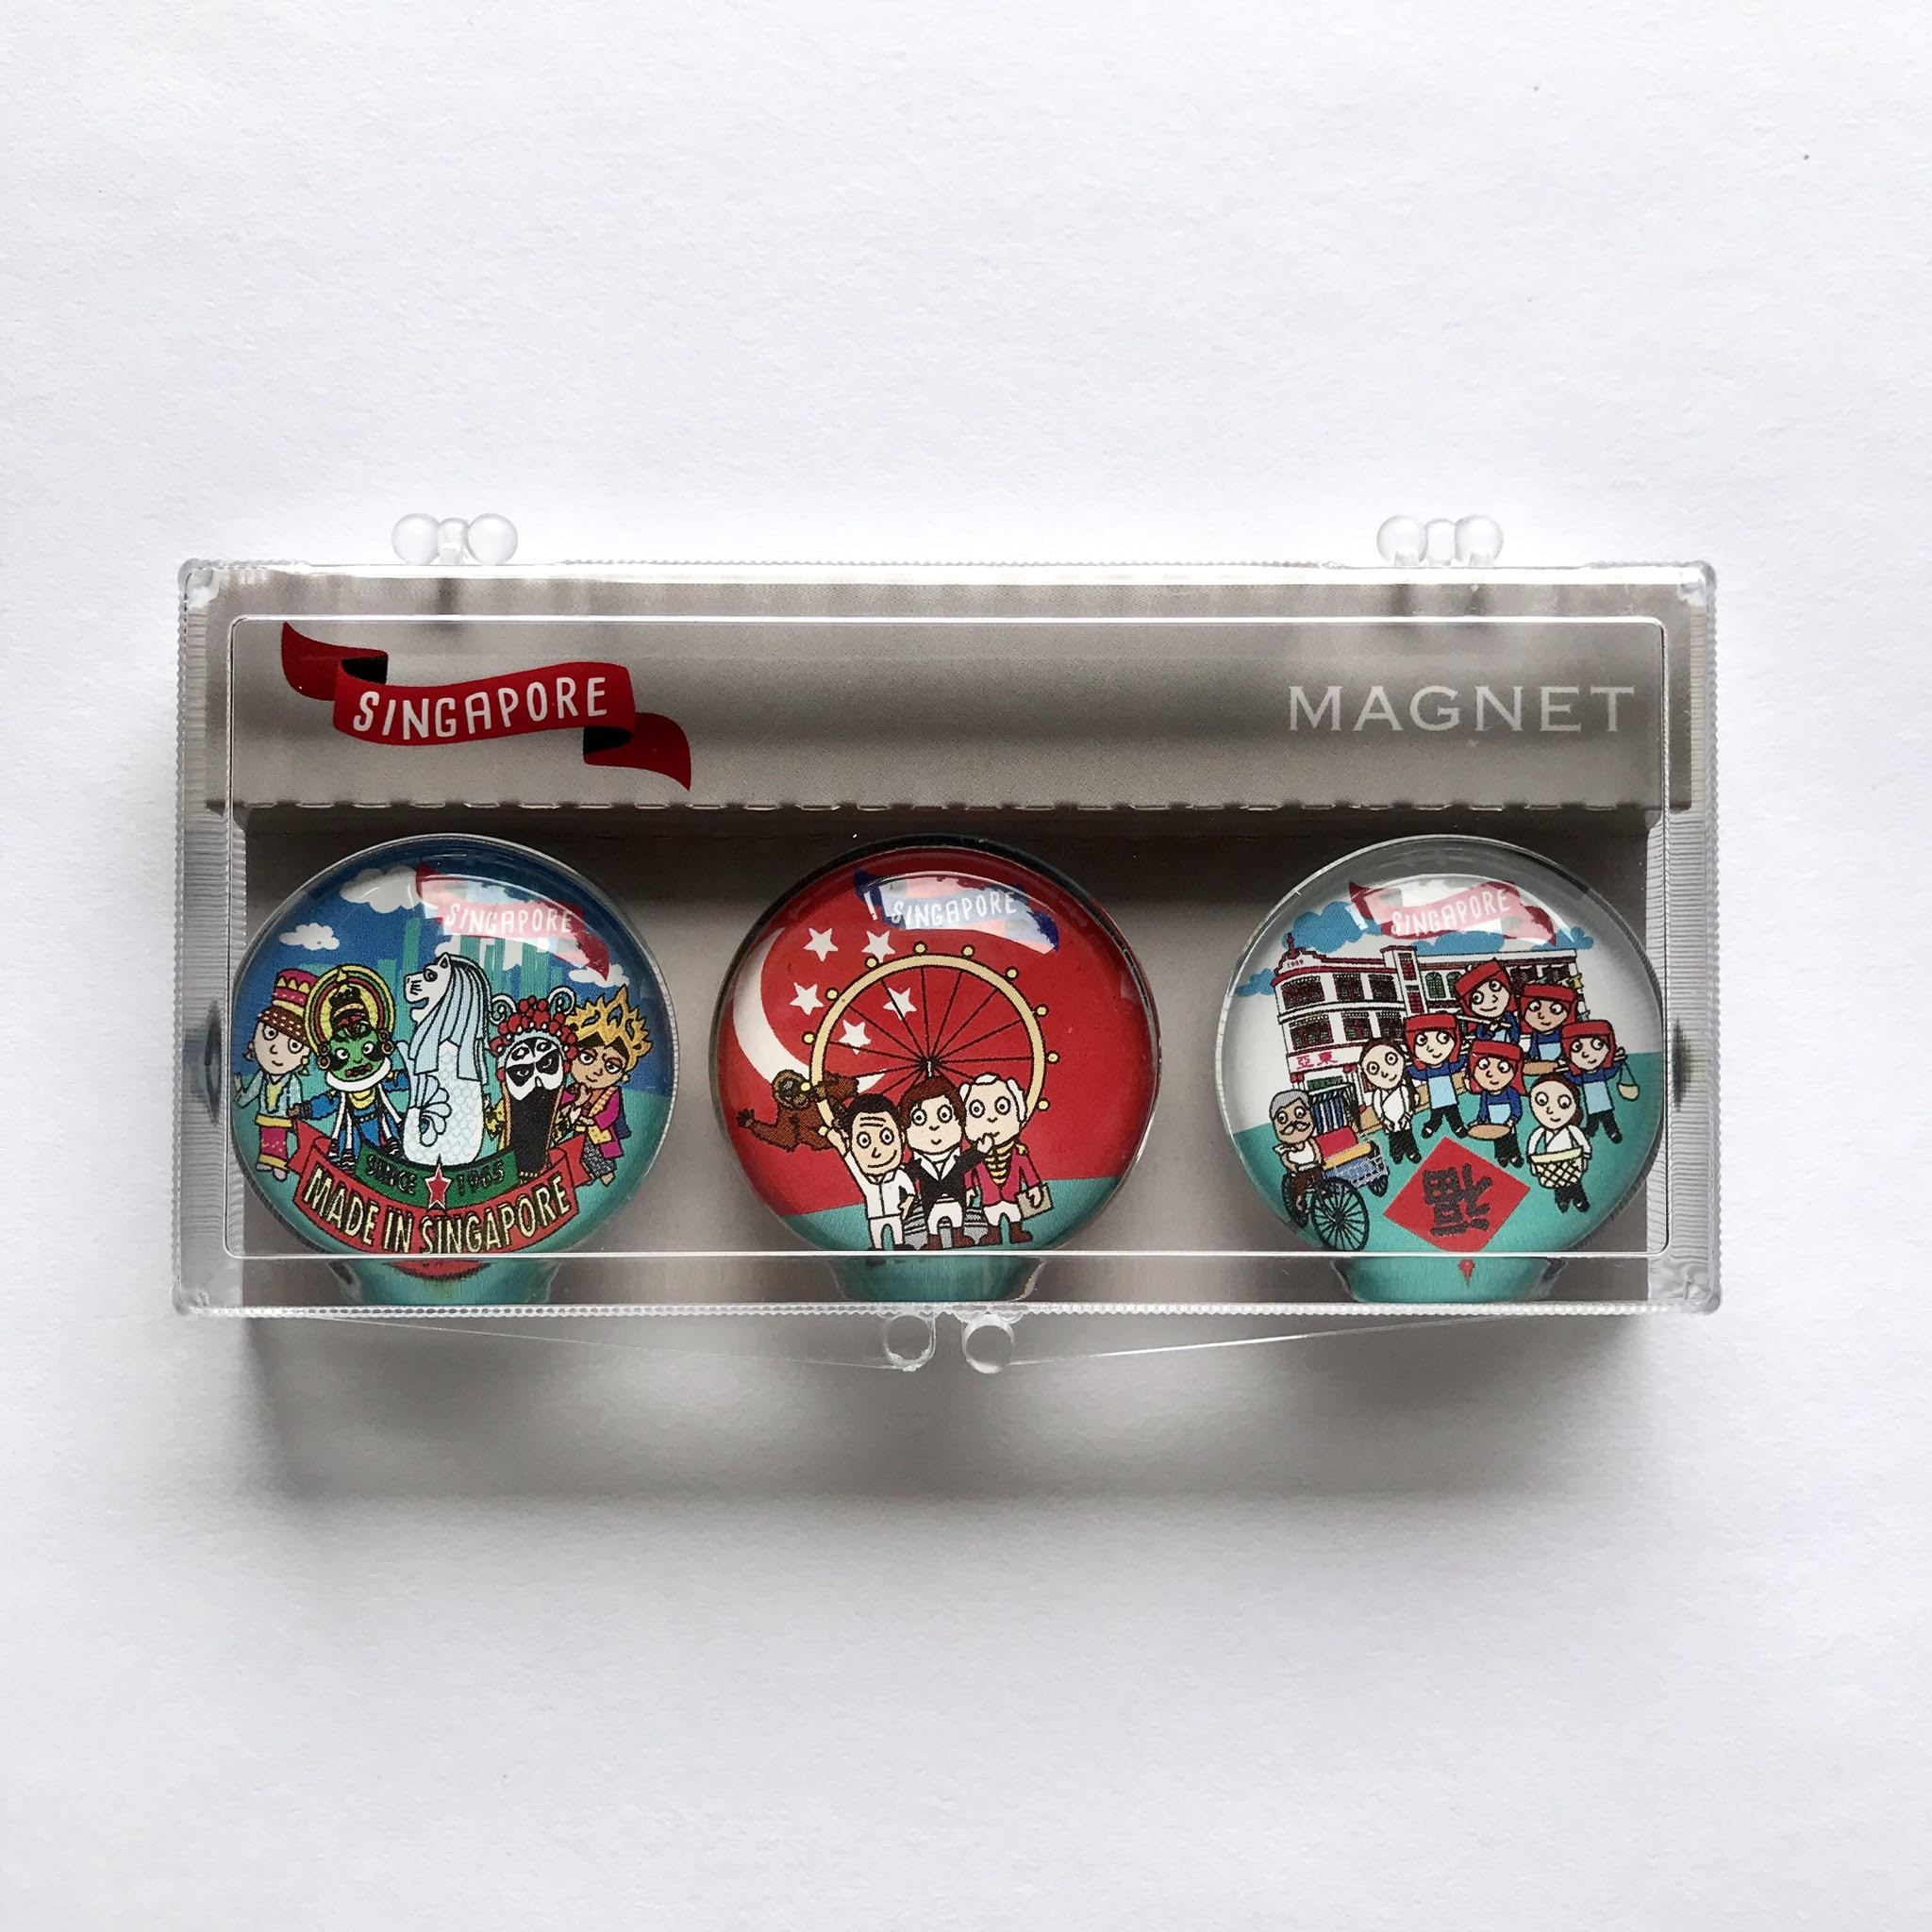 SG Magnet: Multi Racial Local Magnets Little Red Box